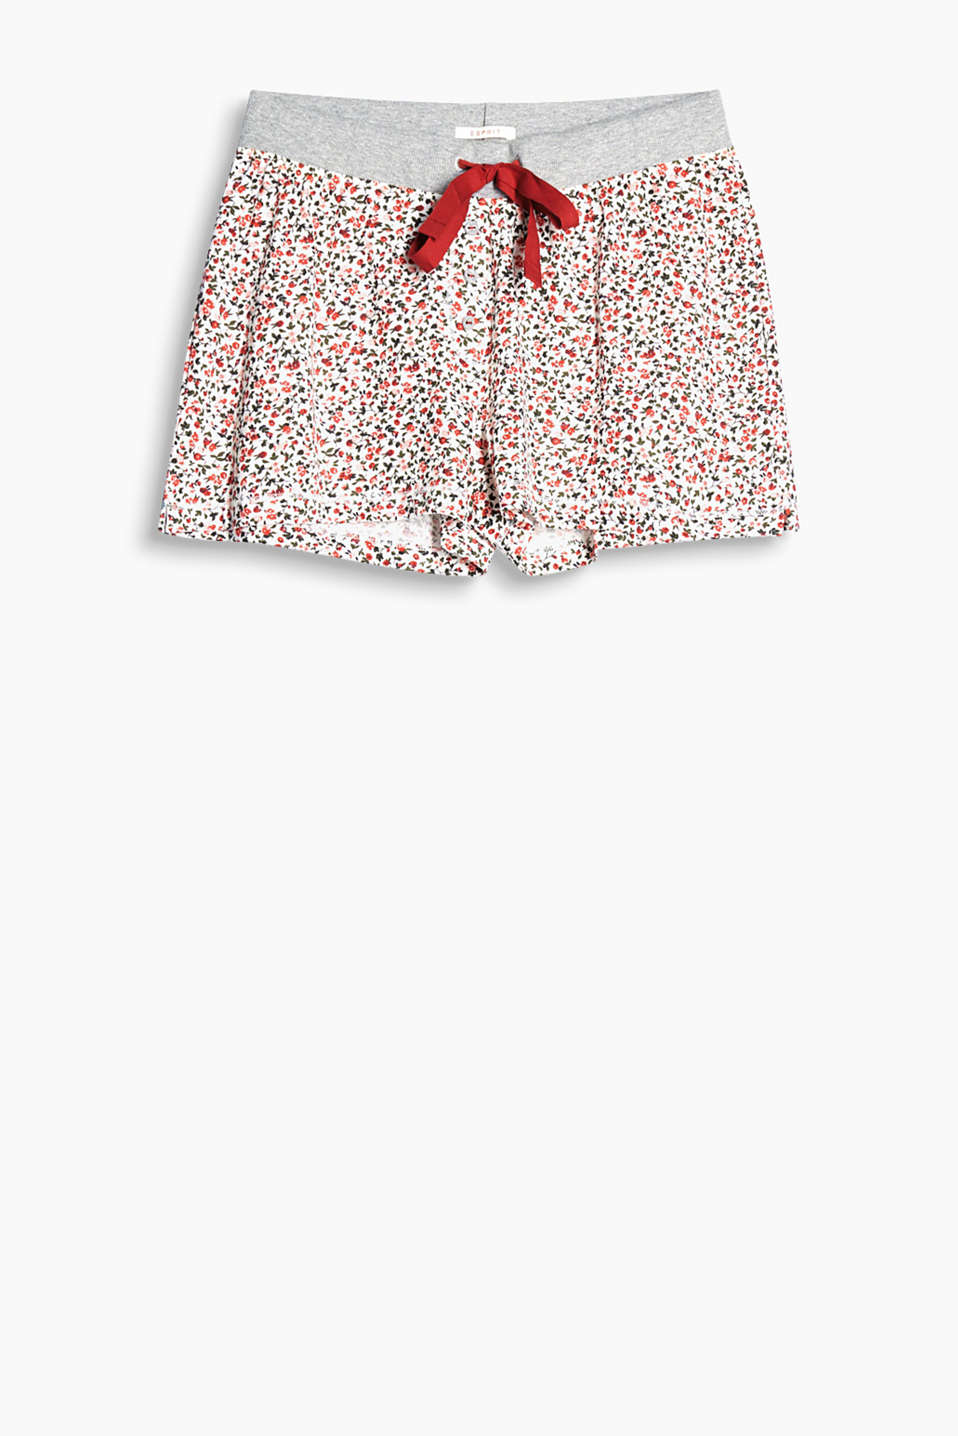 Pyjama shorts with a pretty floral print, wide, elasticated waistband and drawstring ties